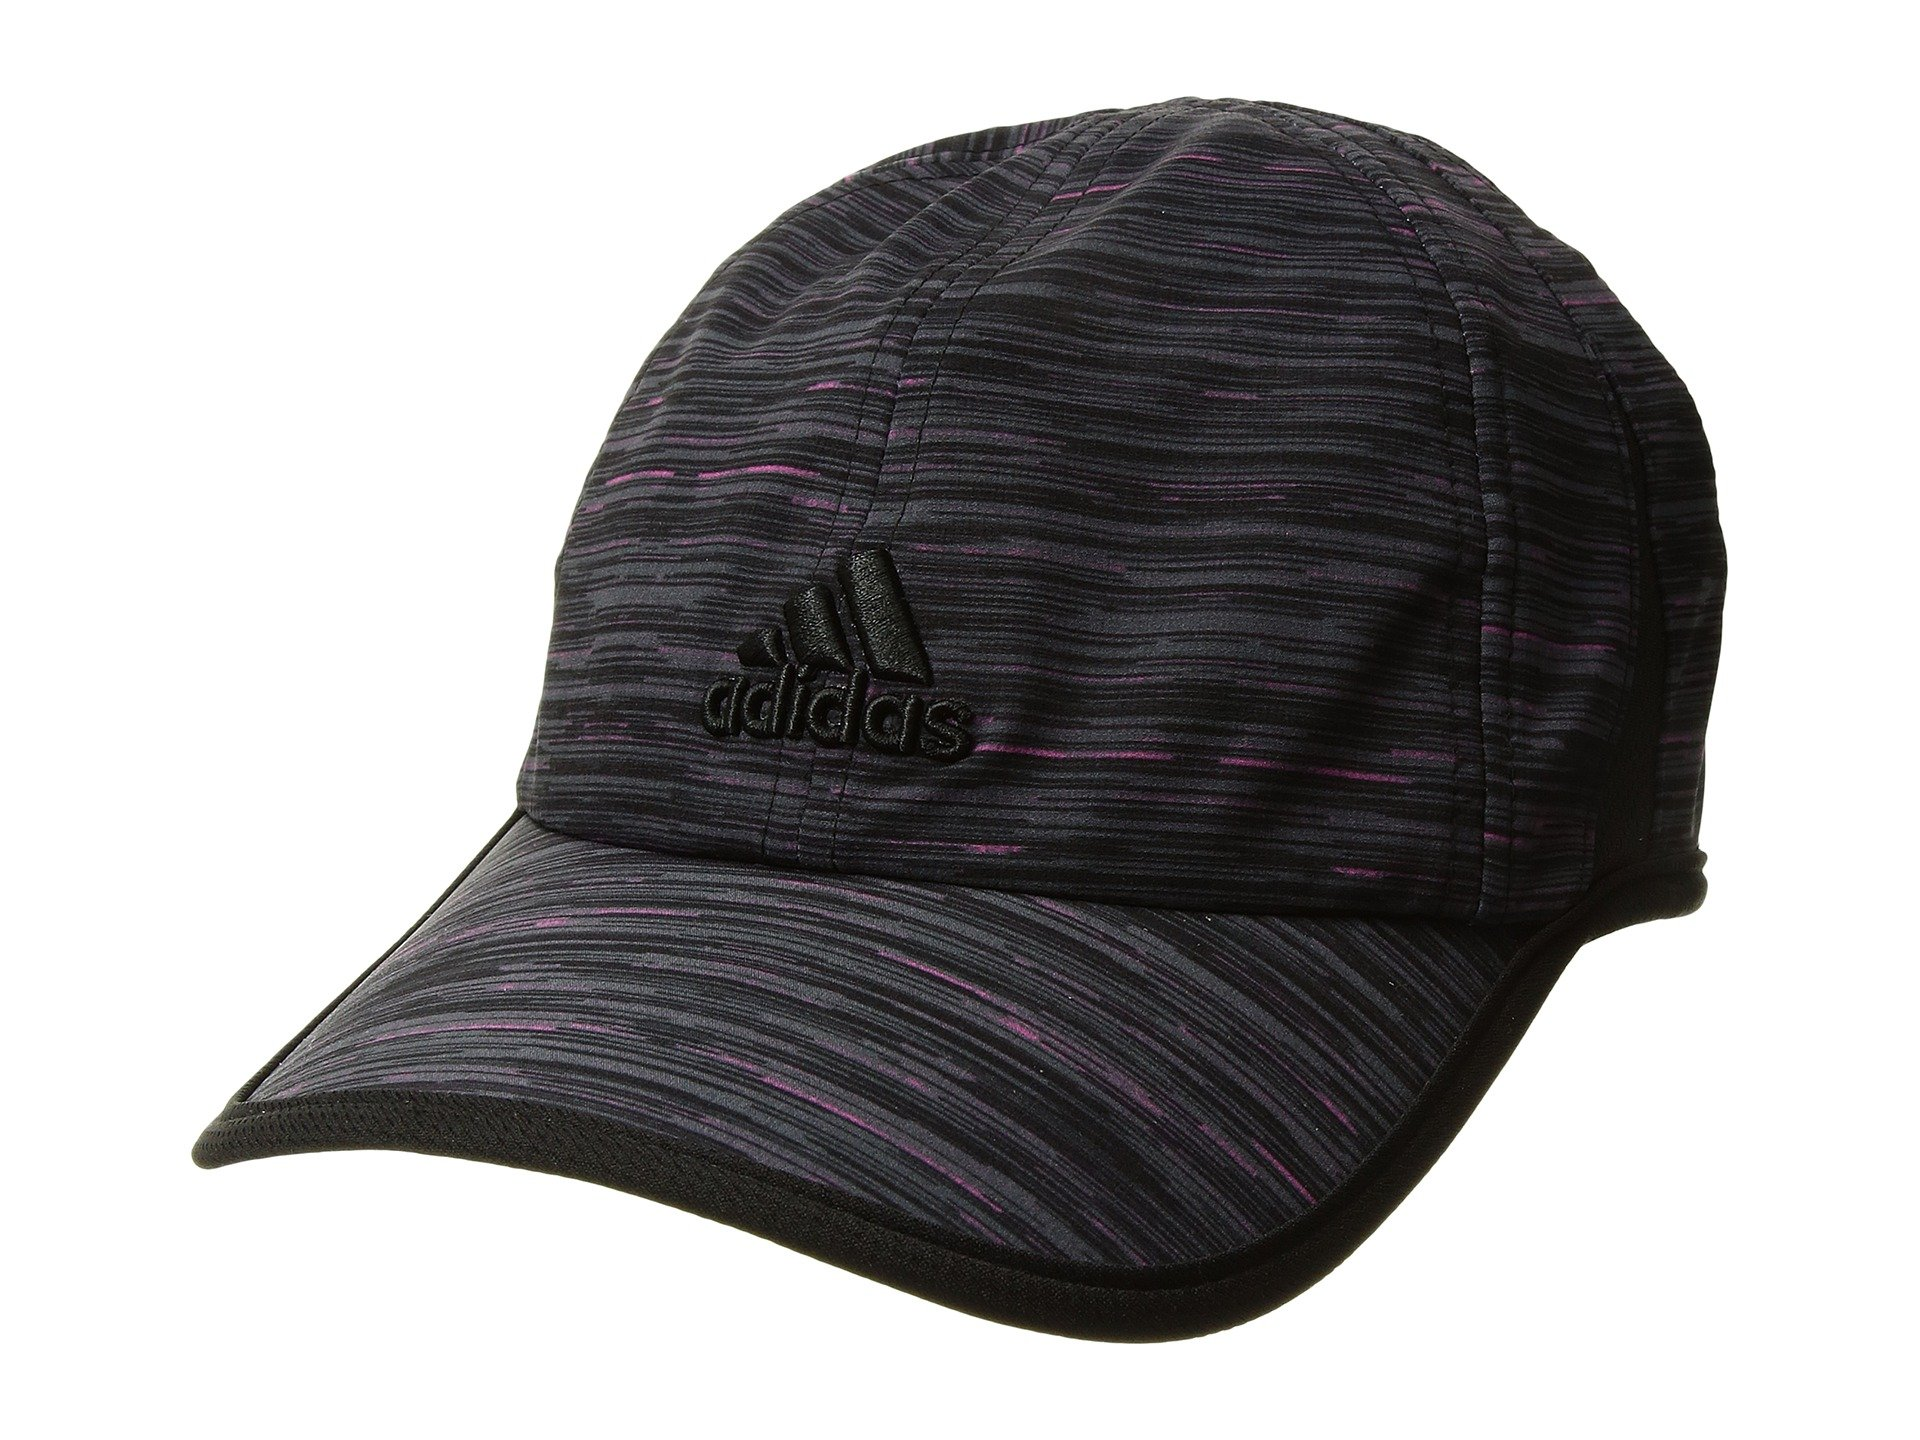 6bba52f3c25 Adidas Originals Adizero Extra Cap In Intense Pink Space Dye Print Black